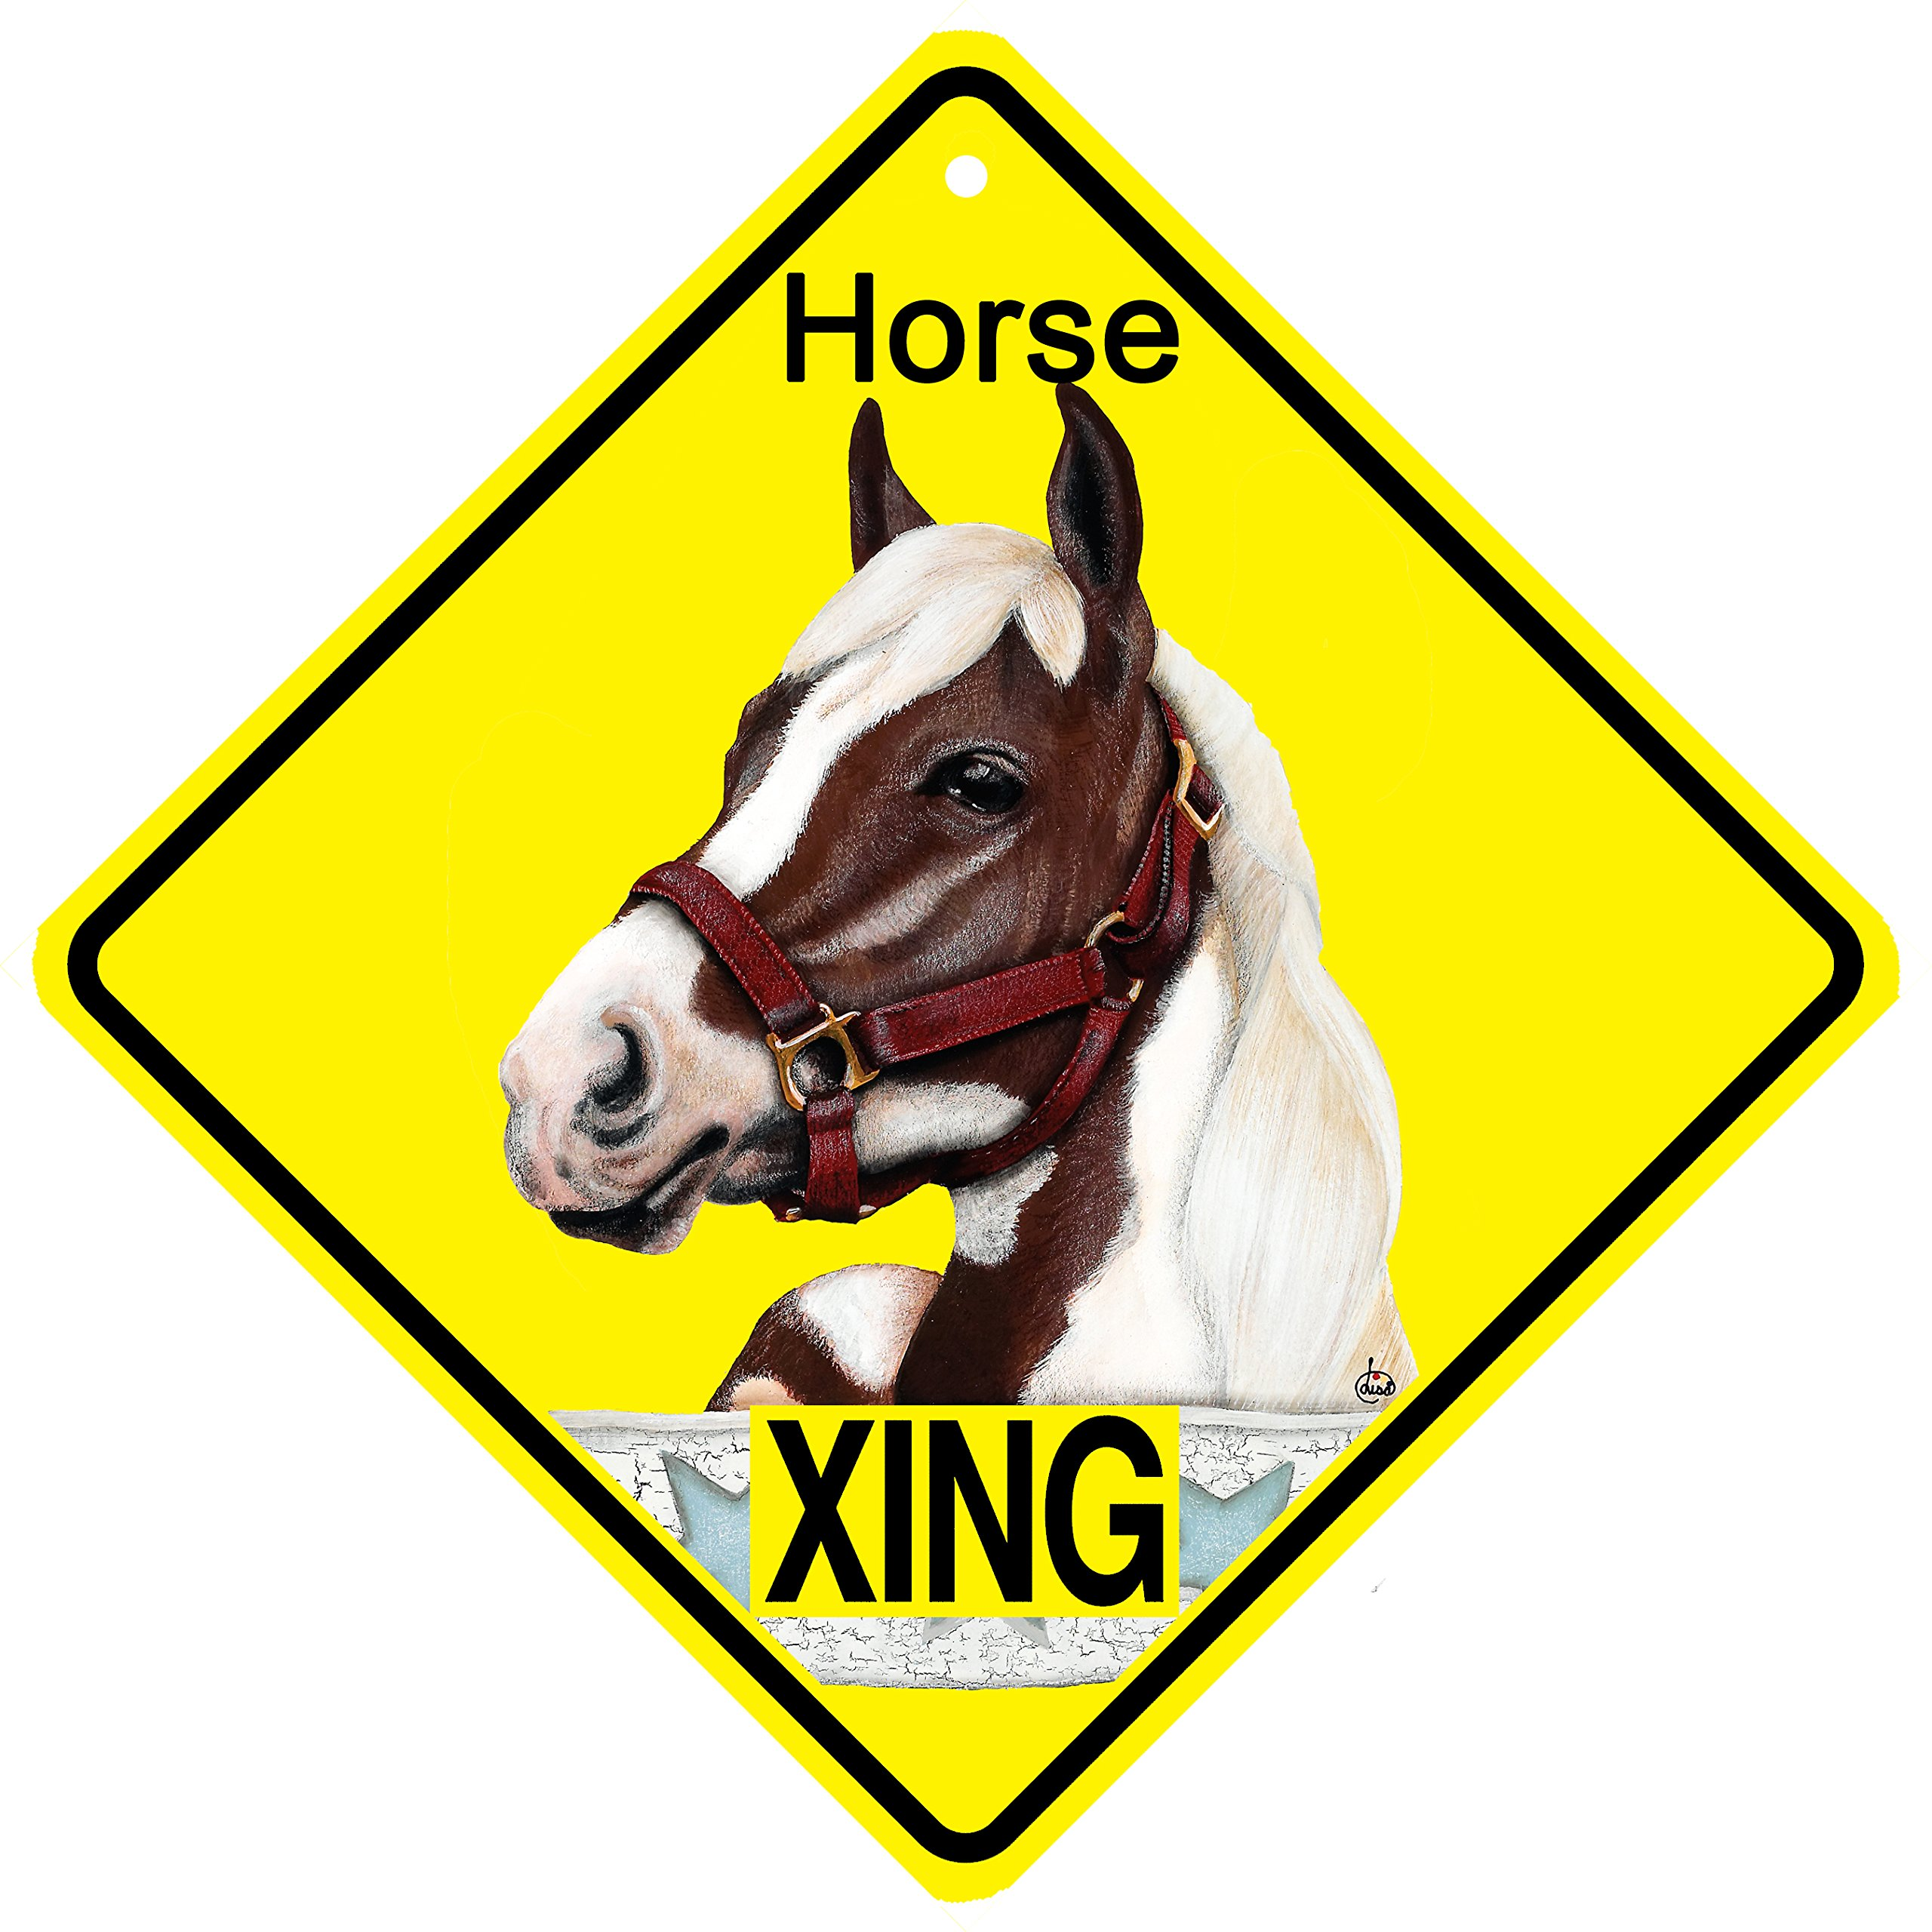 KC Creations Pinto Painted Horse metal Xing caution warning Crossing sign 11x11 inches diamond or 8x8 inches square square